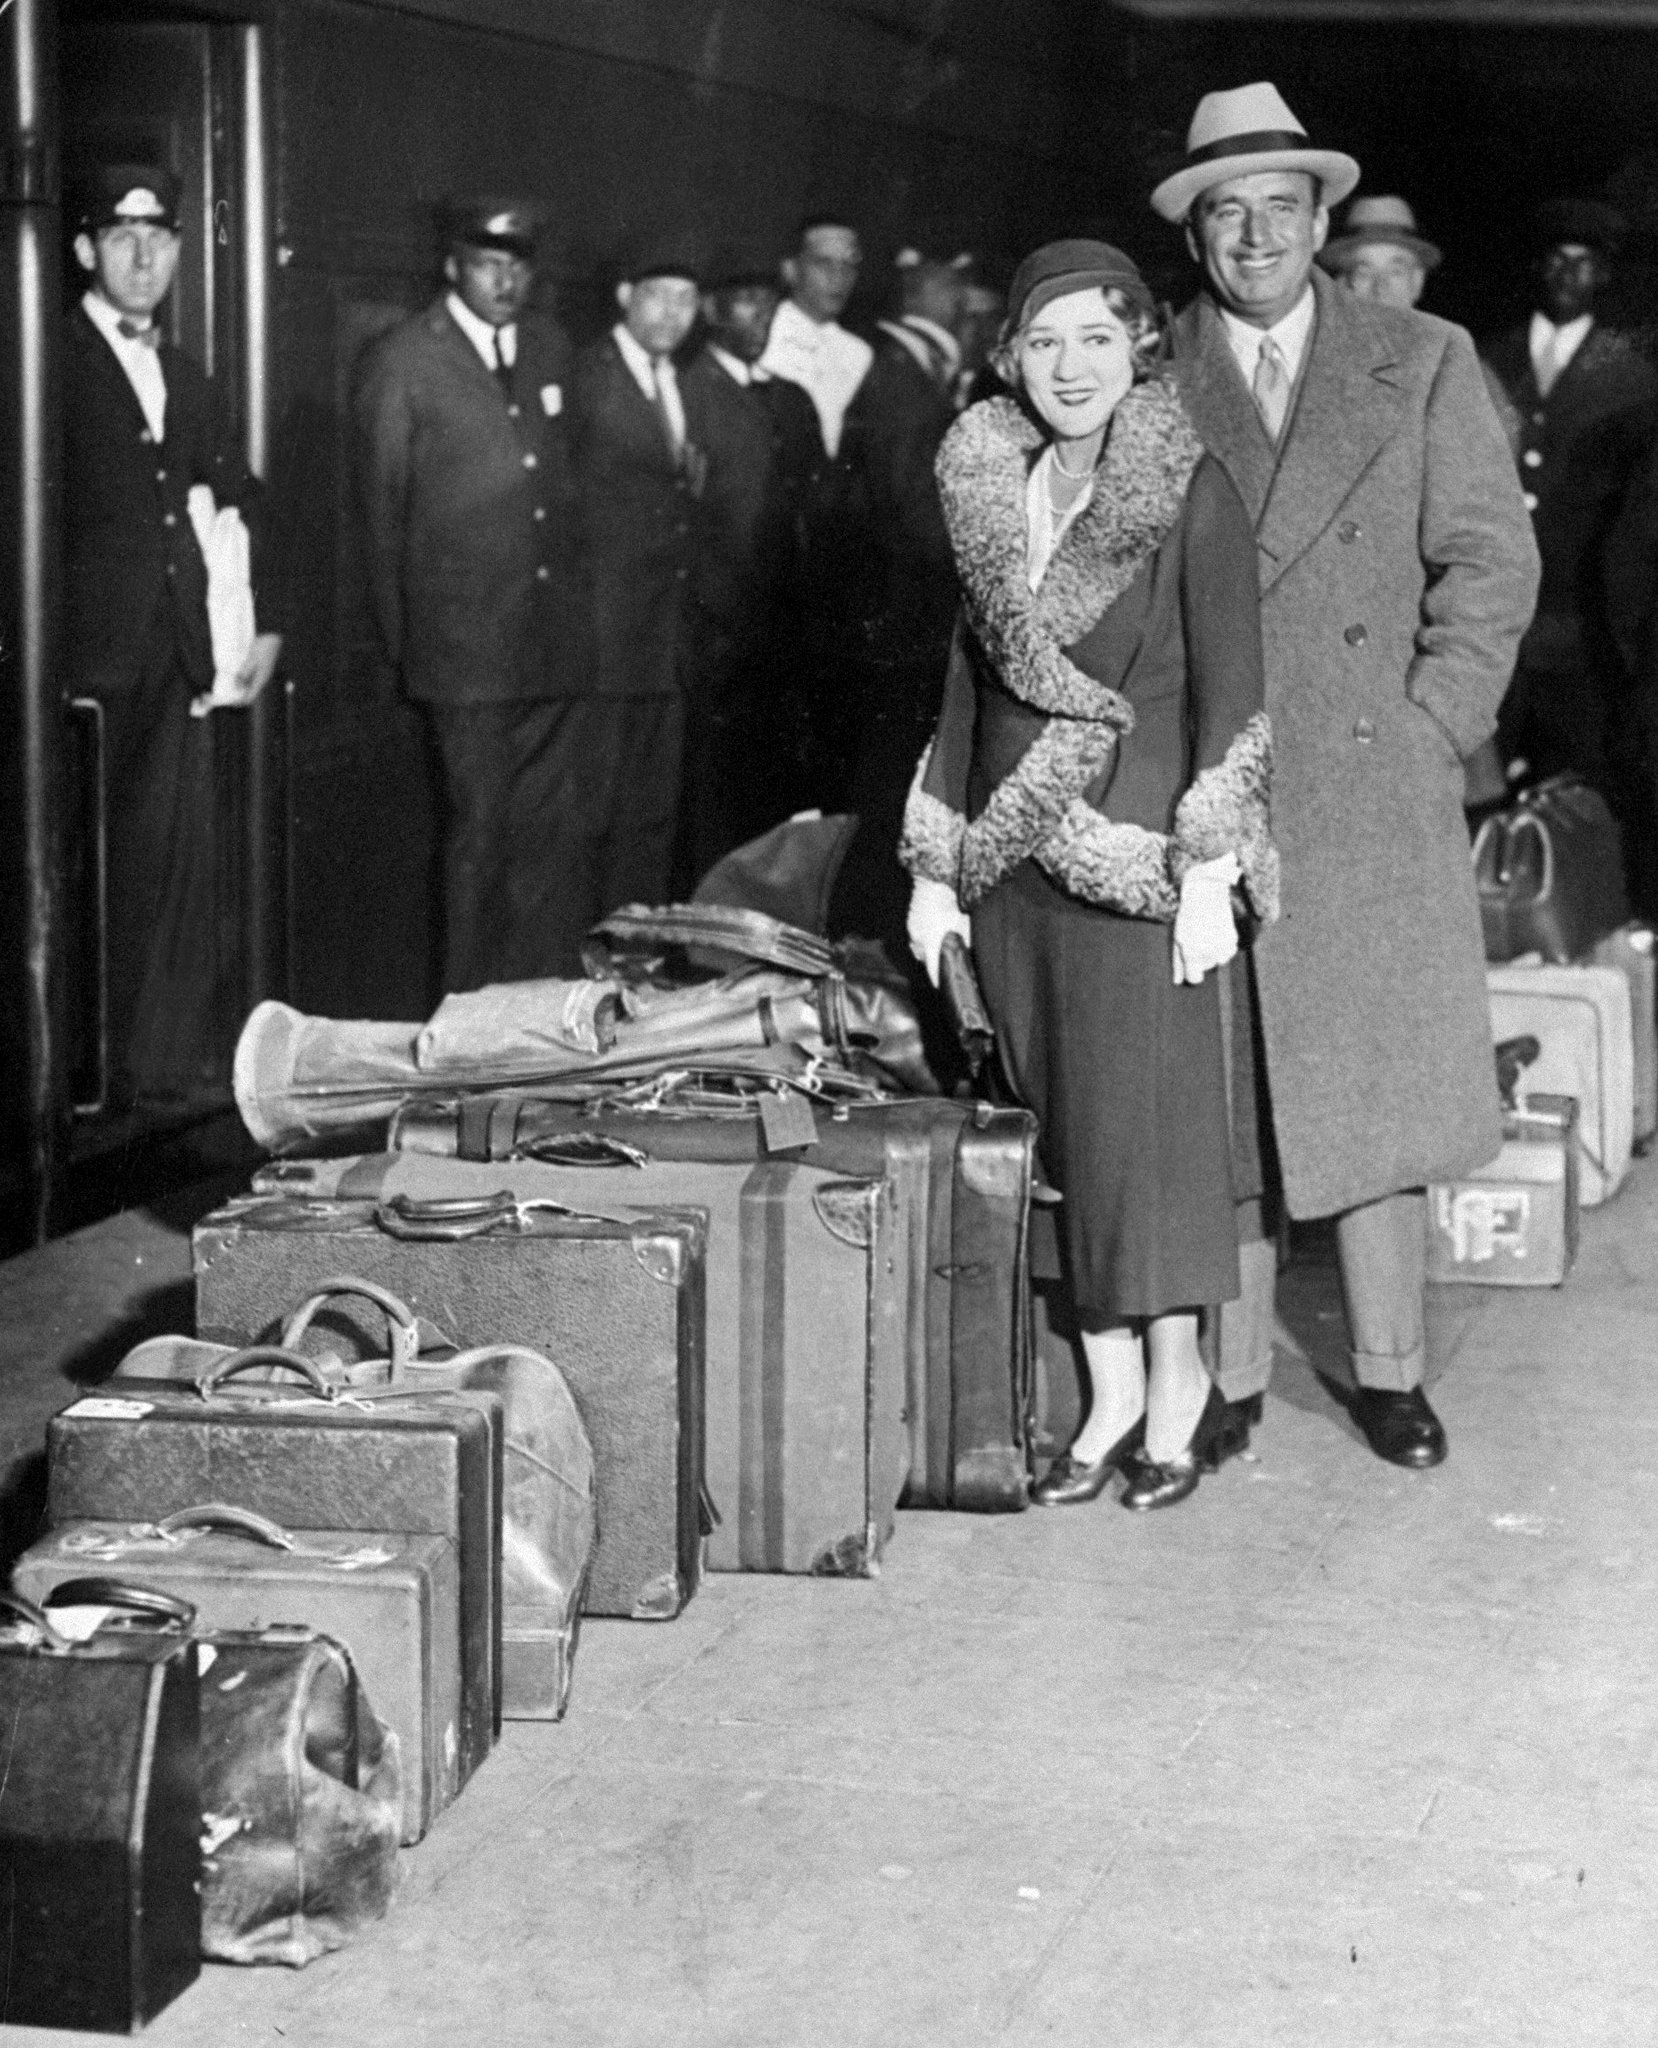 Mary Pickford and Douglas Fairbanks stand at the Grand Central Terminal on November 1, 1931 | Photo: Getty Images